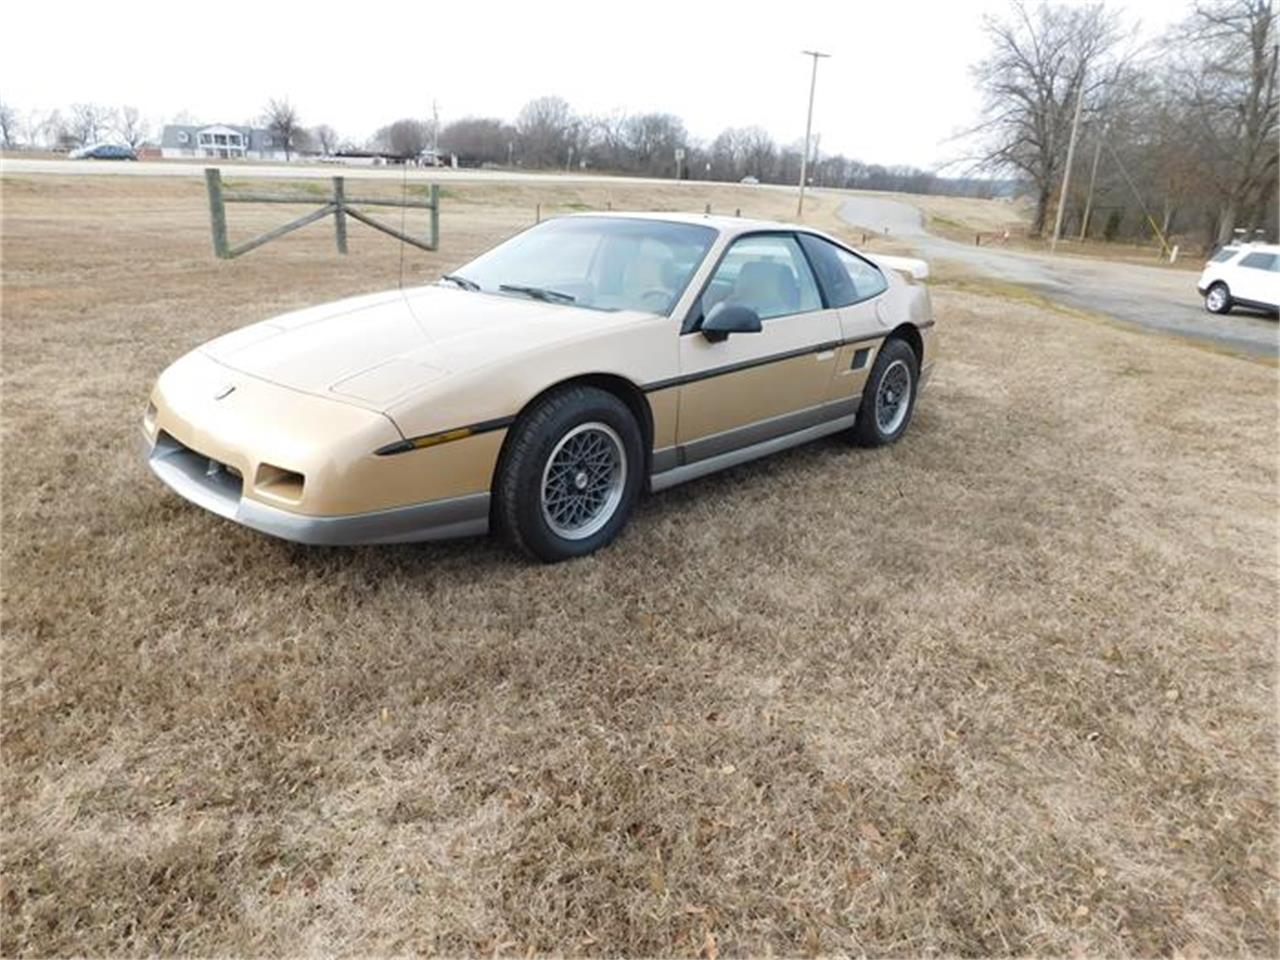 Large Picture of '87 Pontiac Fiero - $8,000.00 - G8Z8